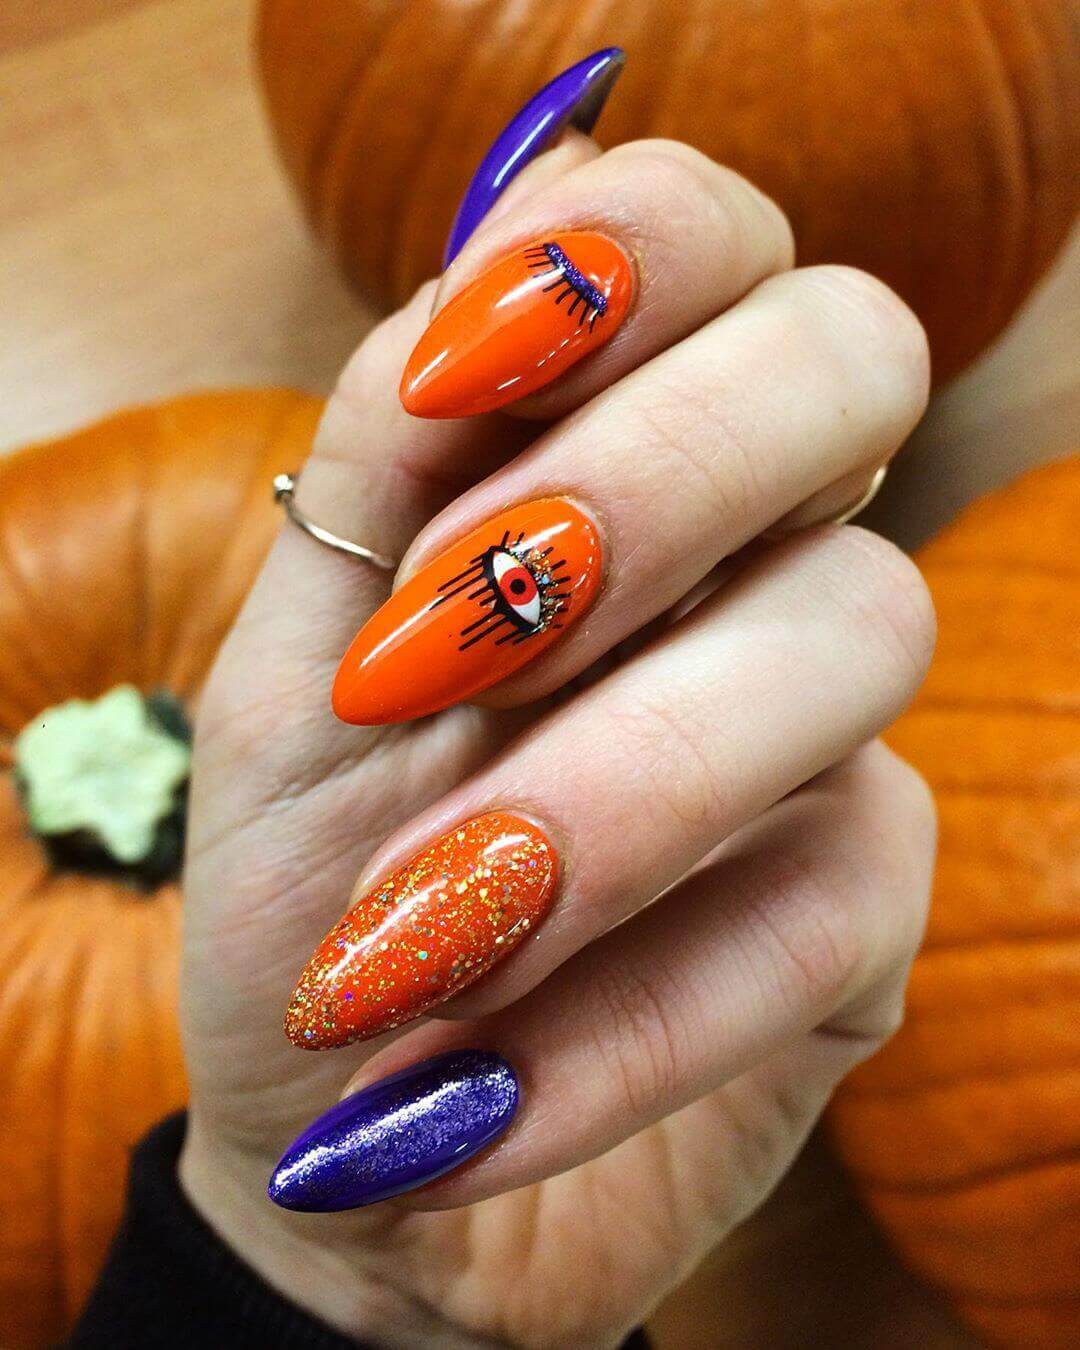 Nails decorated orange with blue